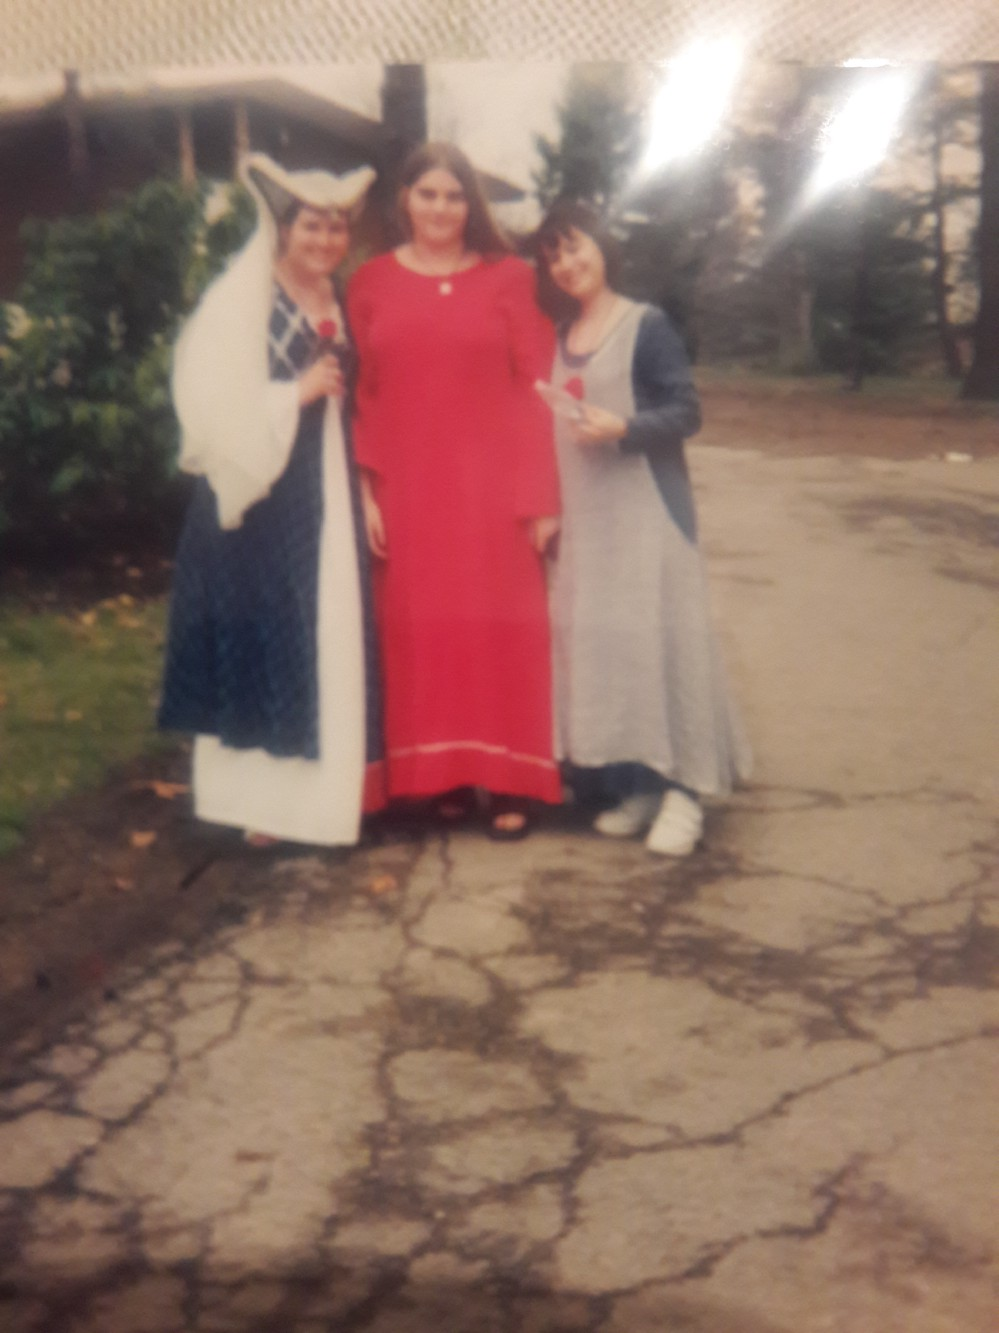 Three young women standing in renaissance dresses at an event.